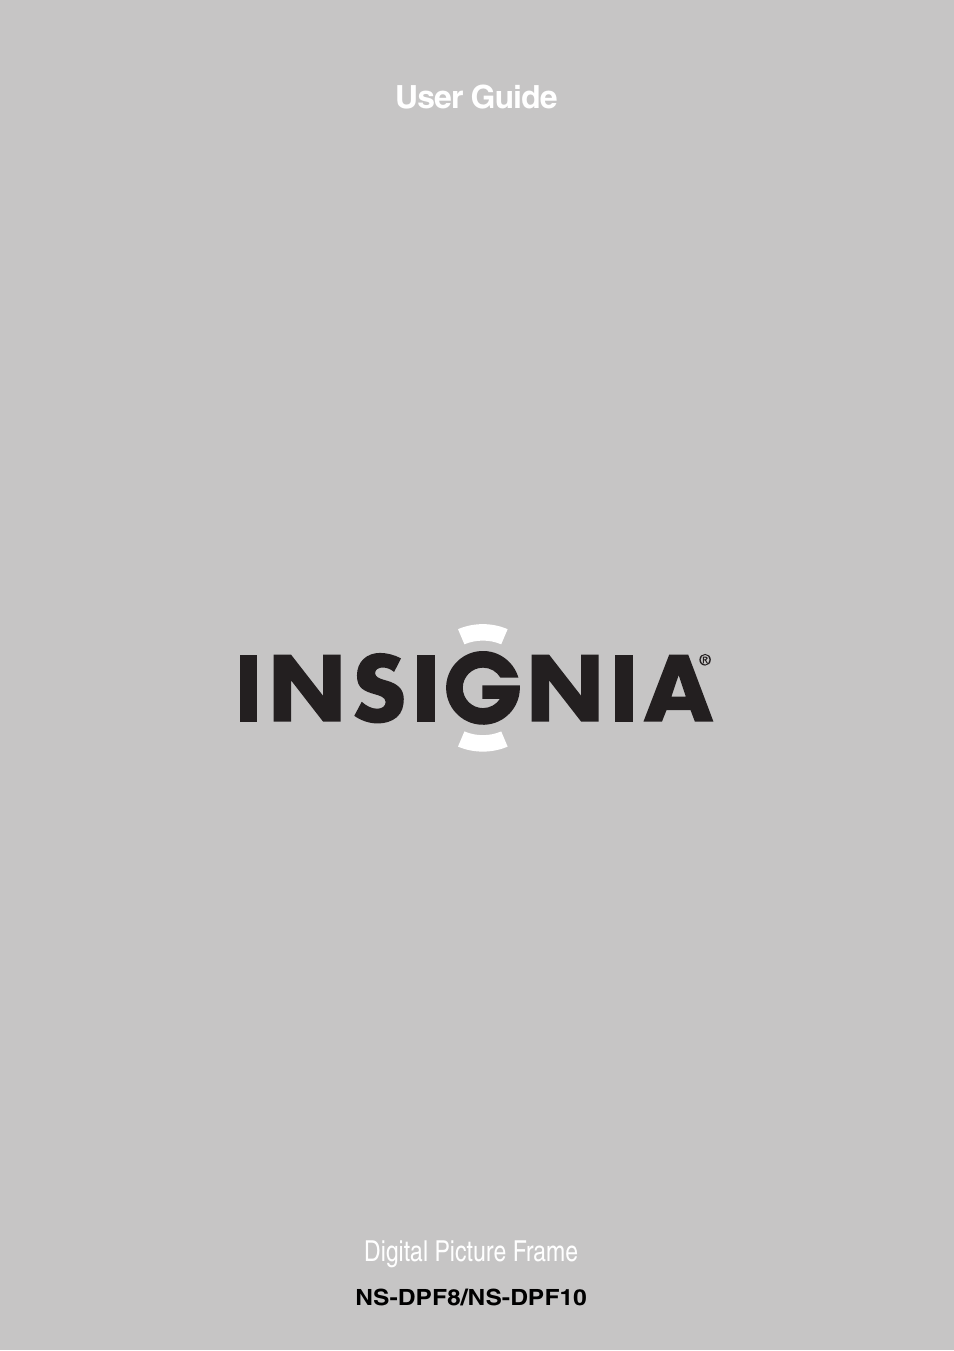 Insignia NS-DPF8 User Manual   14 pages   Also for: NS-DPF10A